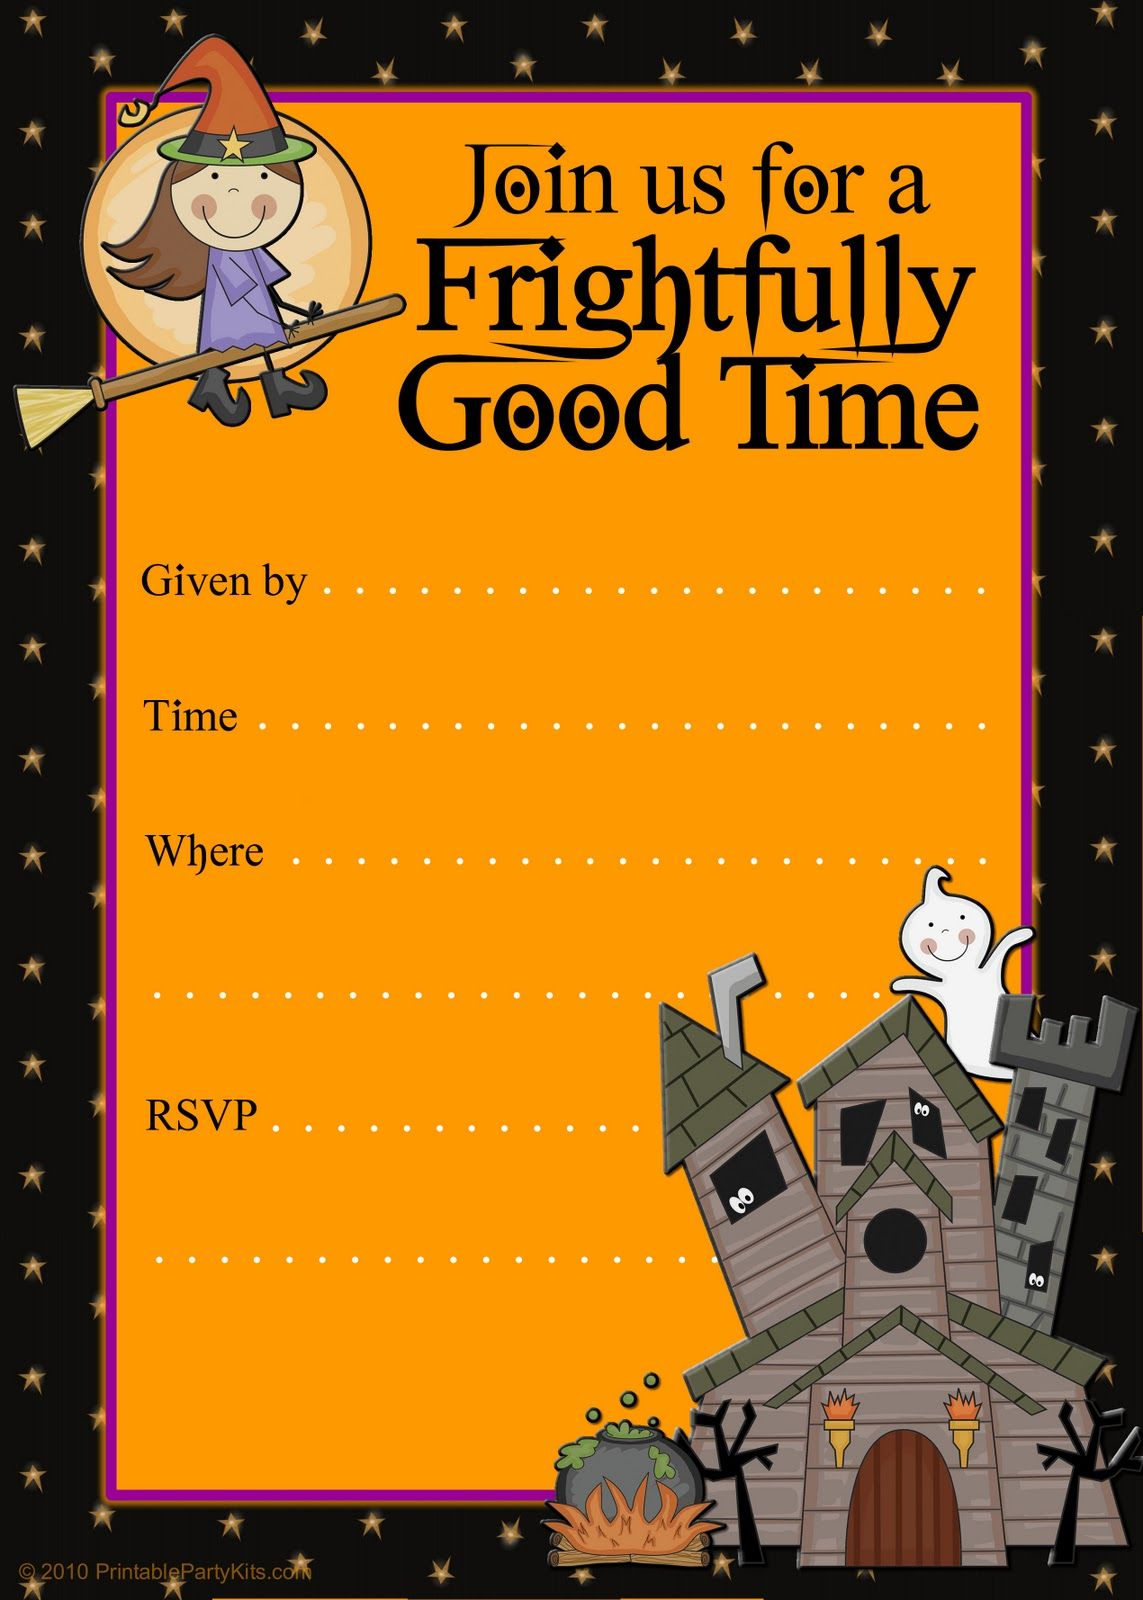 Free Halloween Flyer Invitations Printable (With images